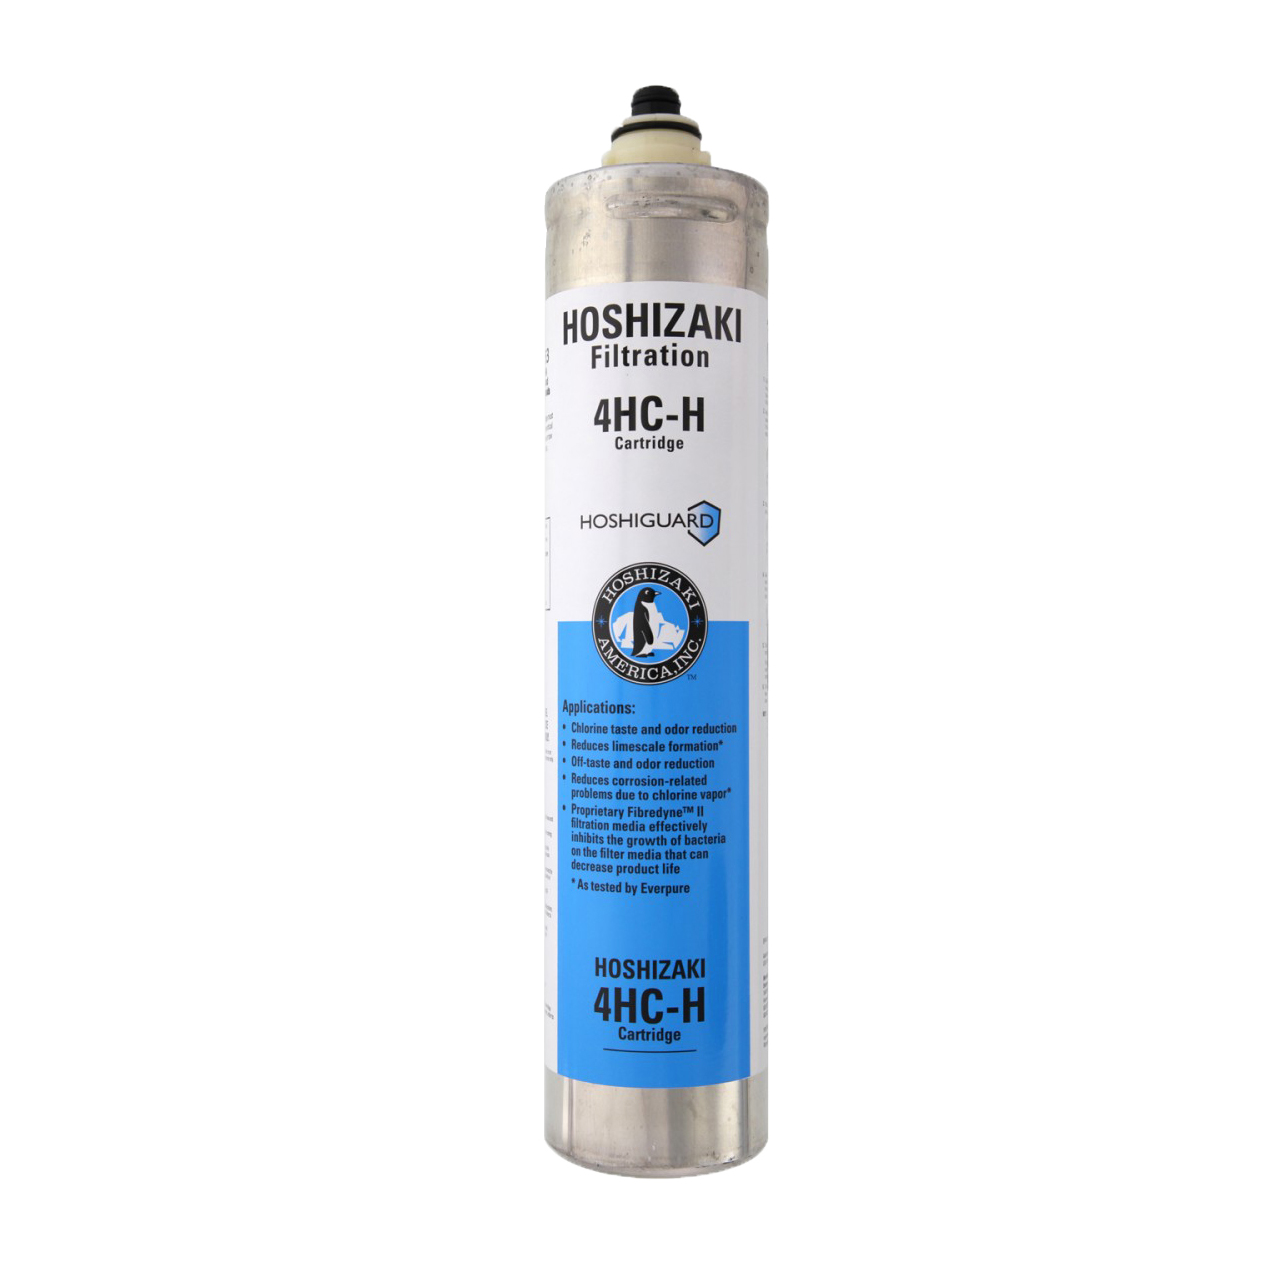 Hoshizaki H9655-11 water filtration system, cartridge